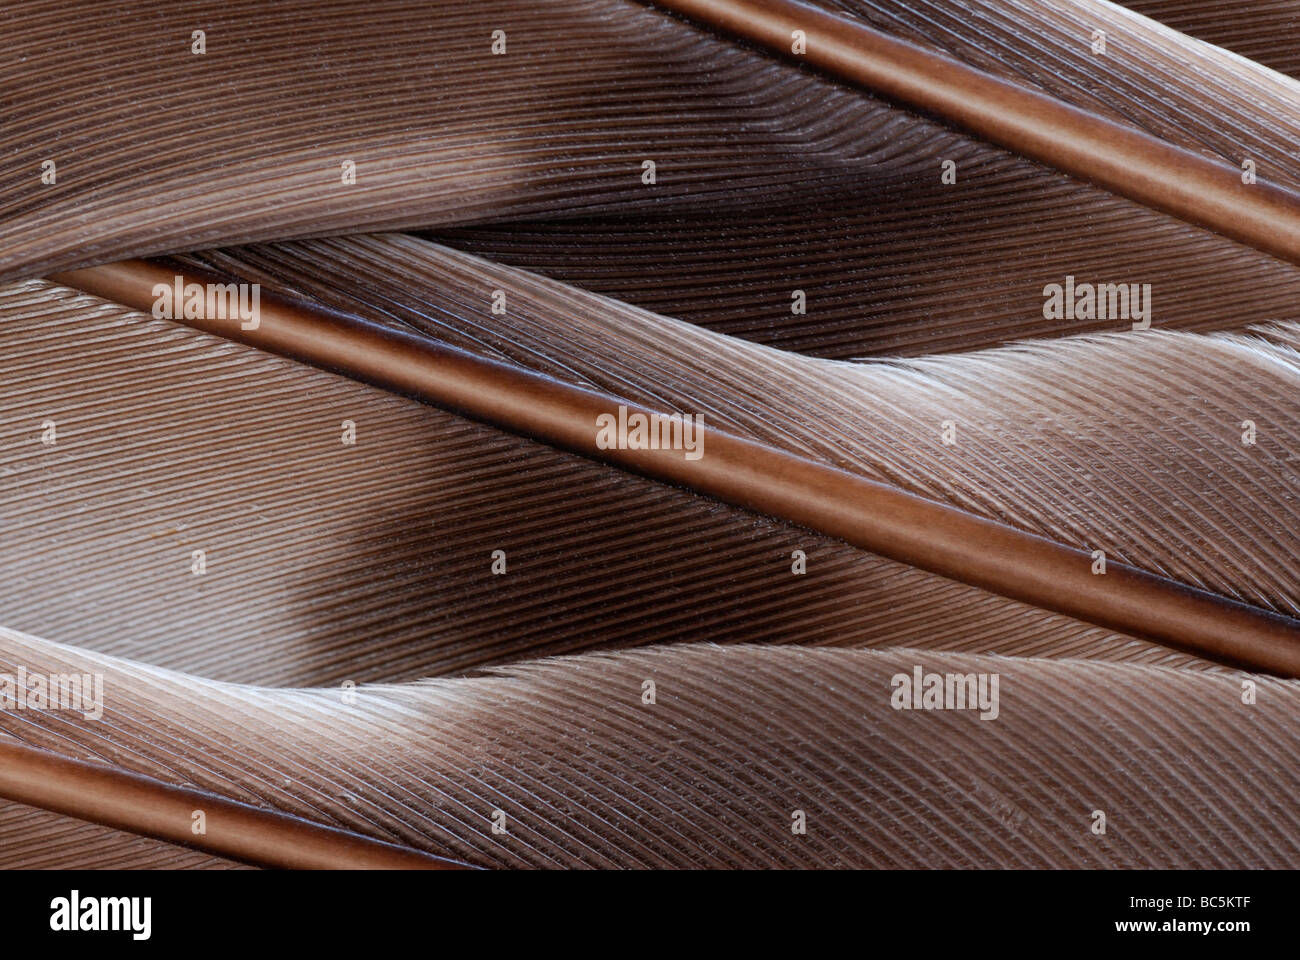 Close-up of the feathers of a wing. - Stock Image